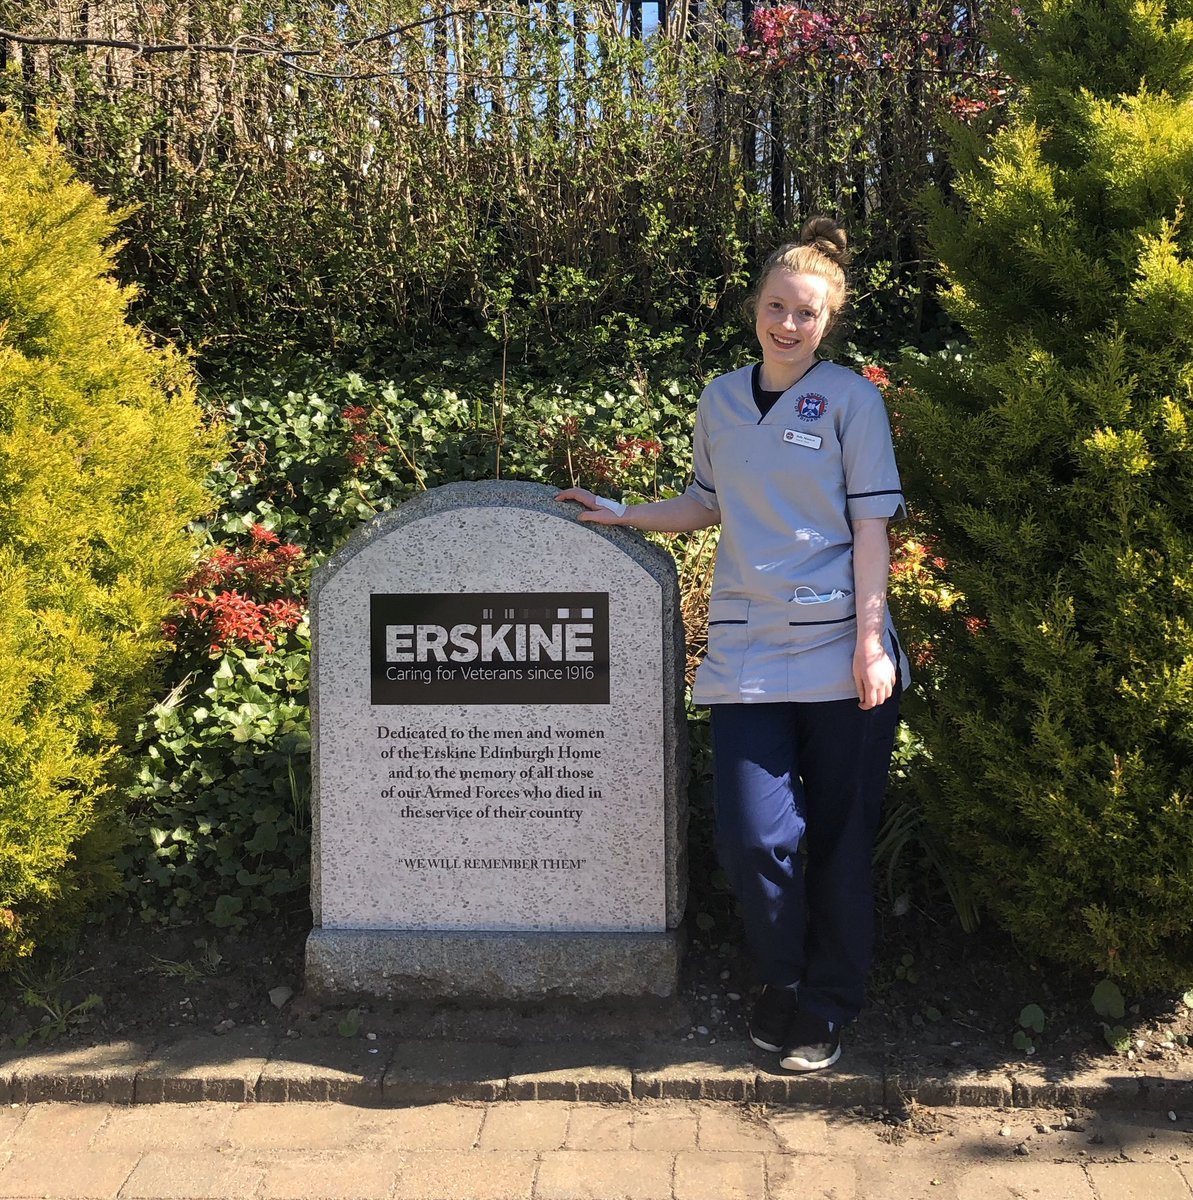 Today we welcomed Della McKenzie 2nd year Student Nurse @EdinburghUni who will be working with us for the next 6 months 👏 😃 @dtbarron @Pollybird1 @IanCMBE @siobhanhamil25